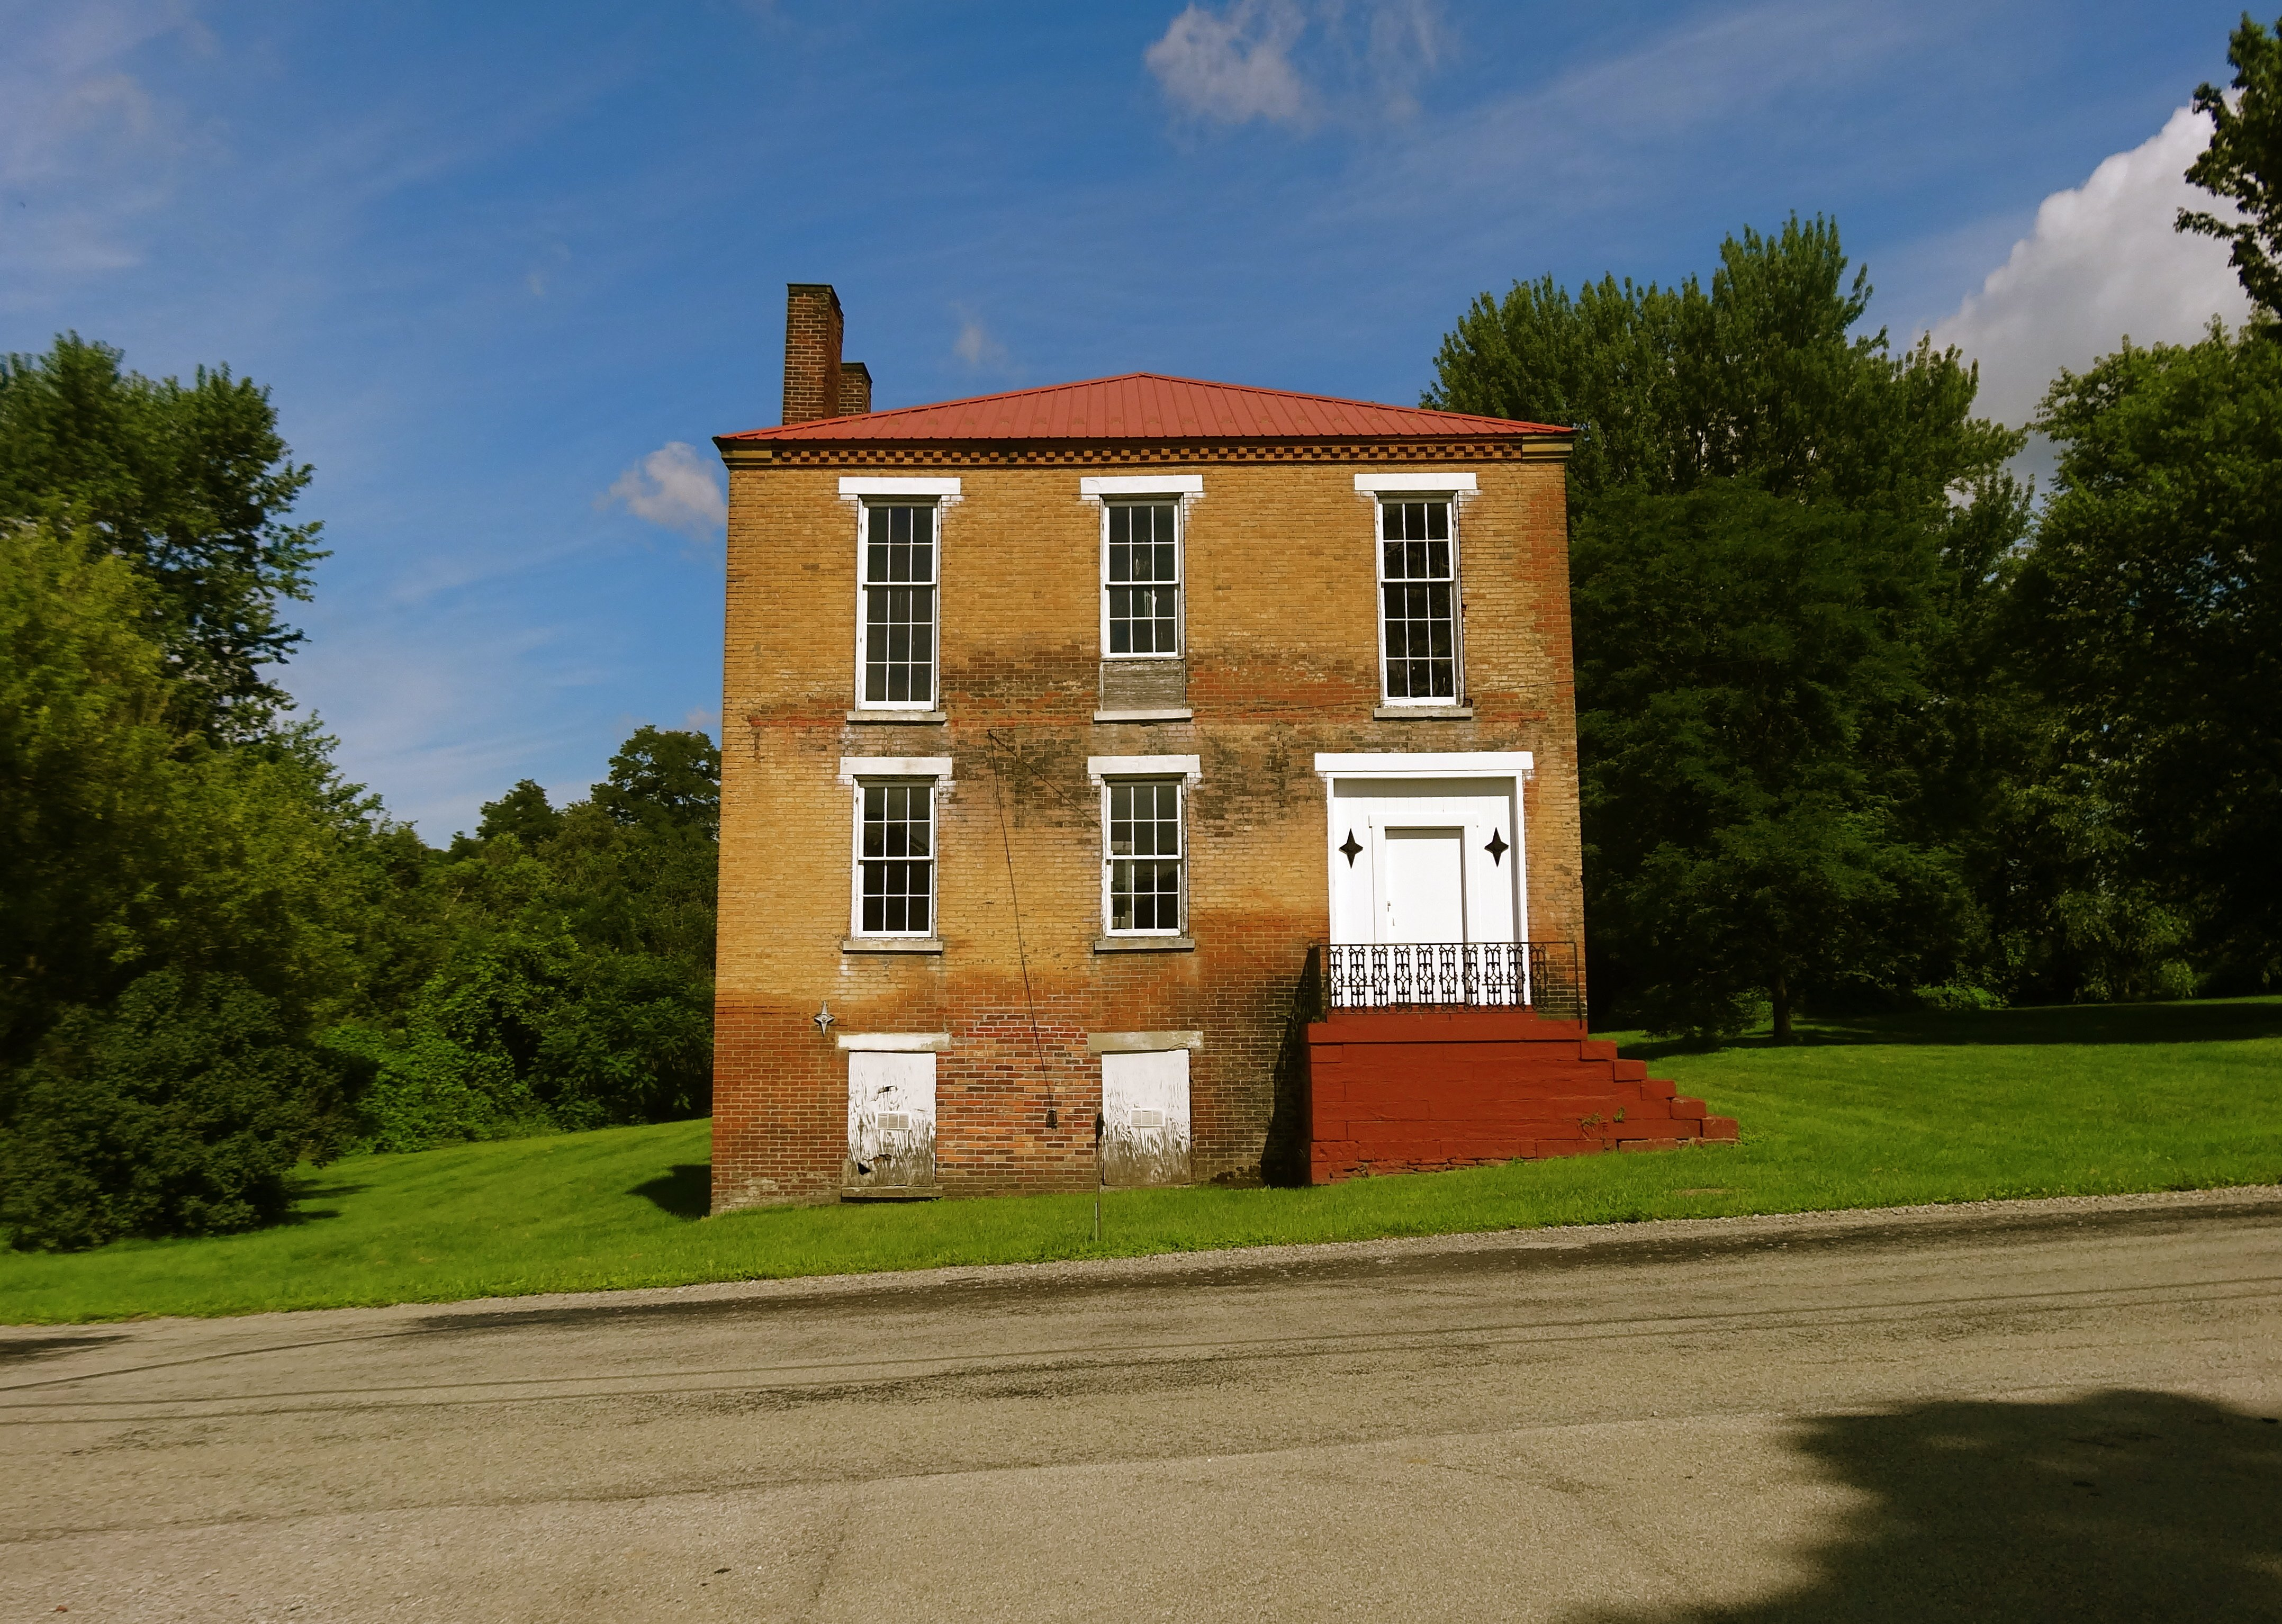 New Stanton (PA) United States  City pictures : pennsylvania coke pa restoration coal distillery scottdale westoverton ...